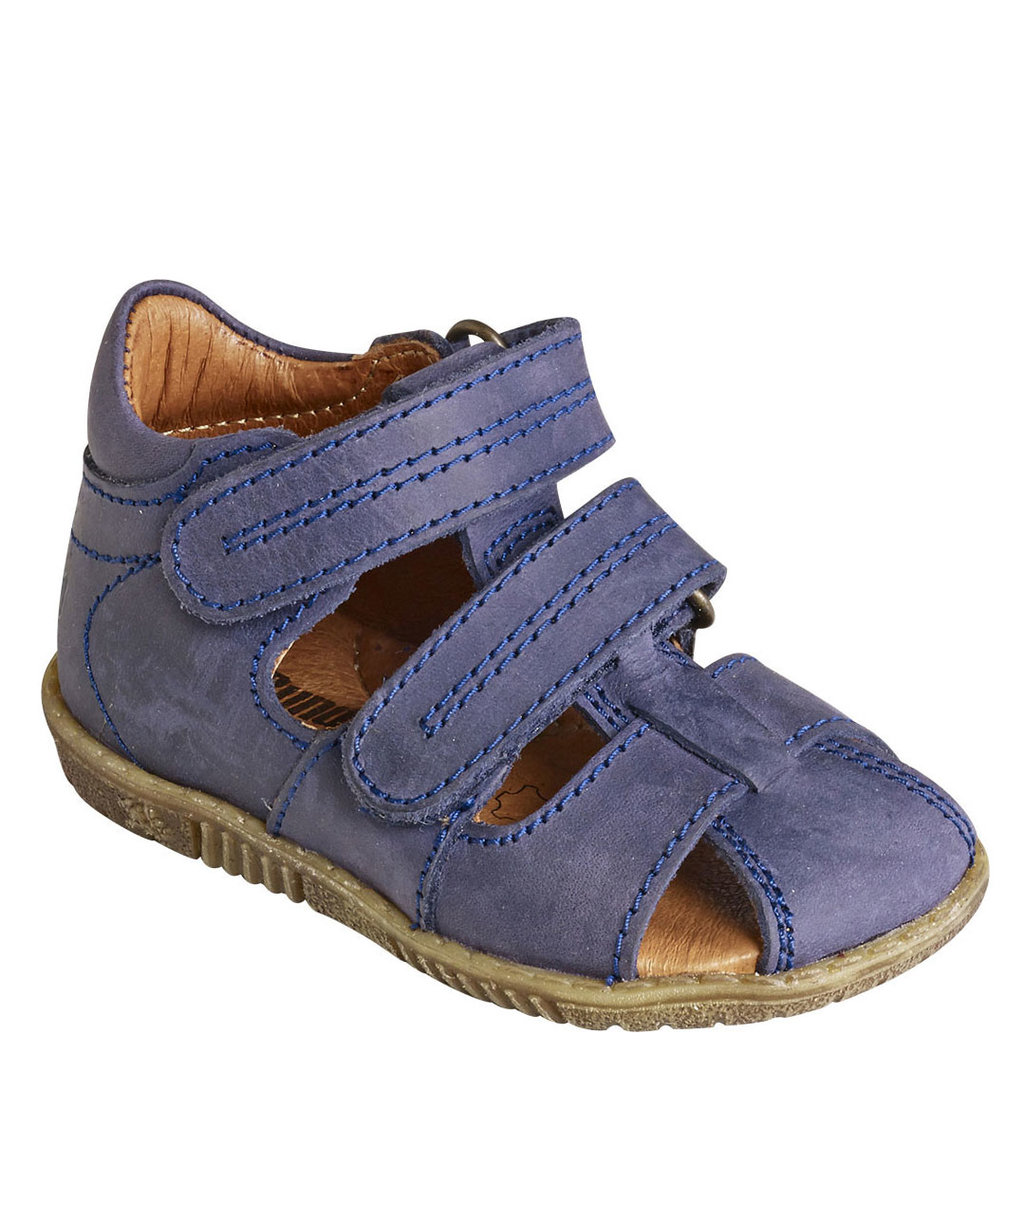 Bundgaard Ranjo sandals for kids, Navy